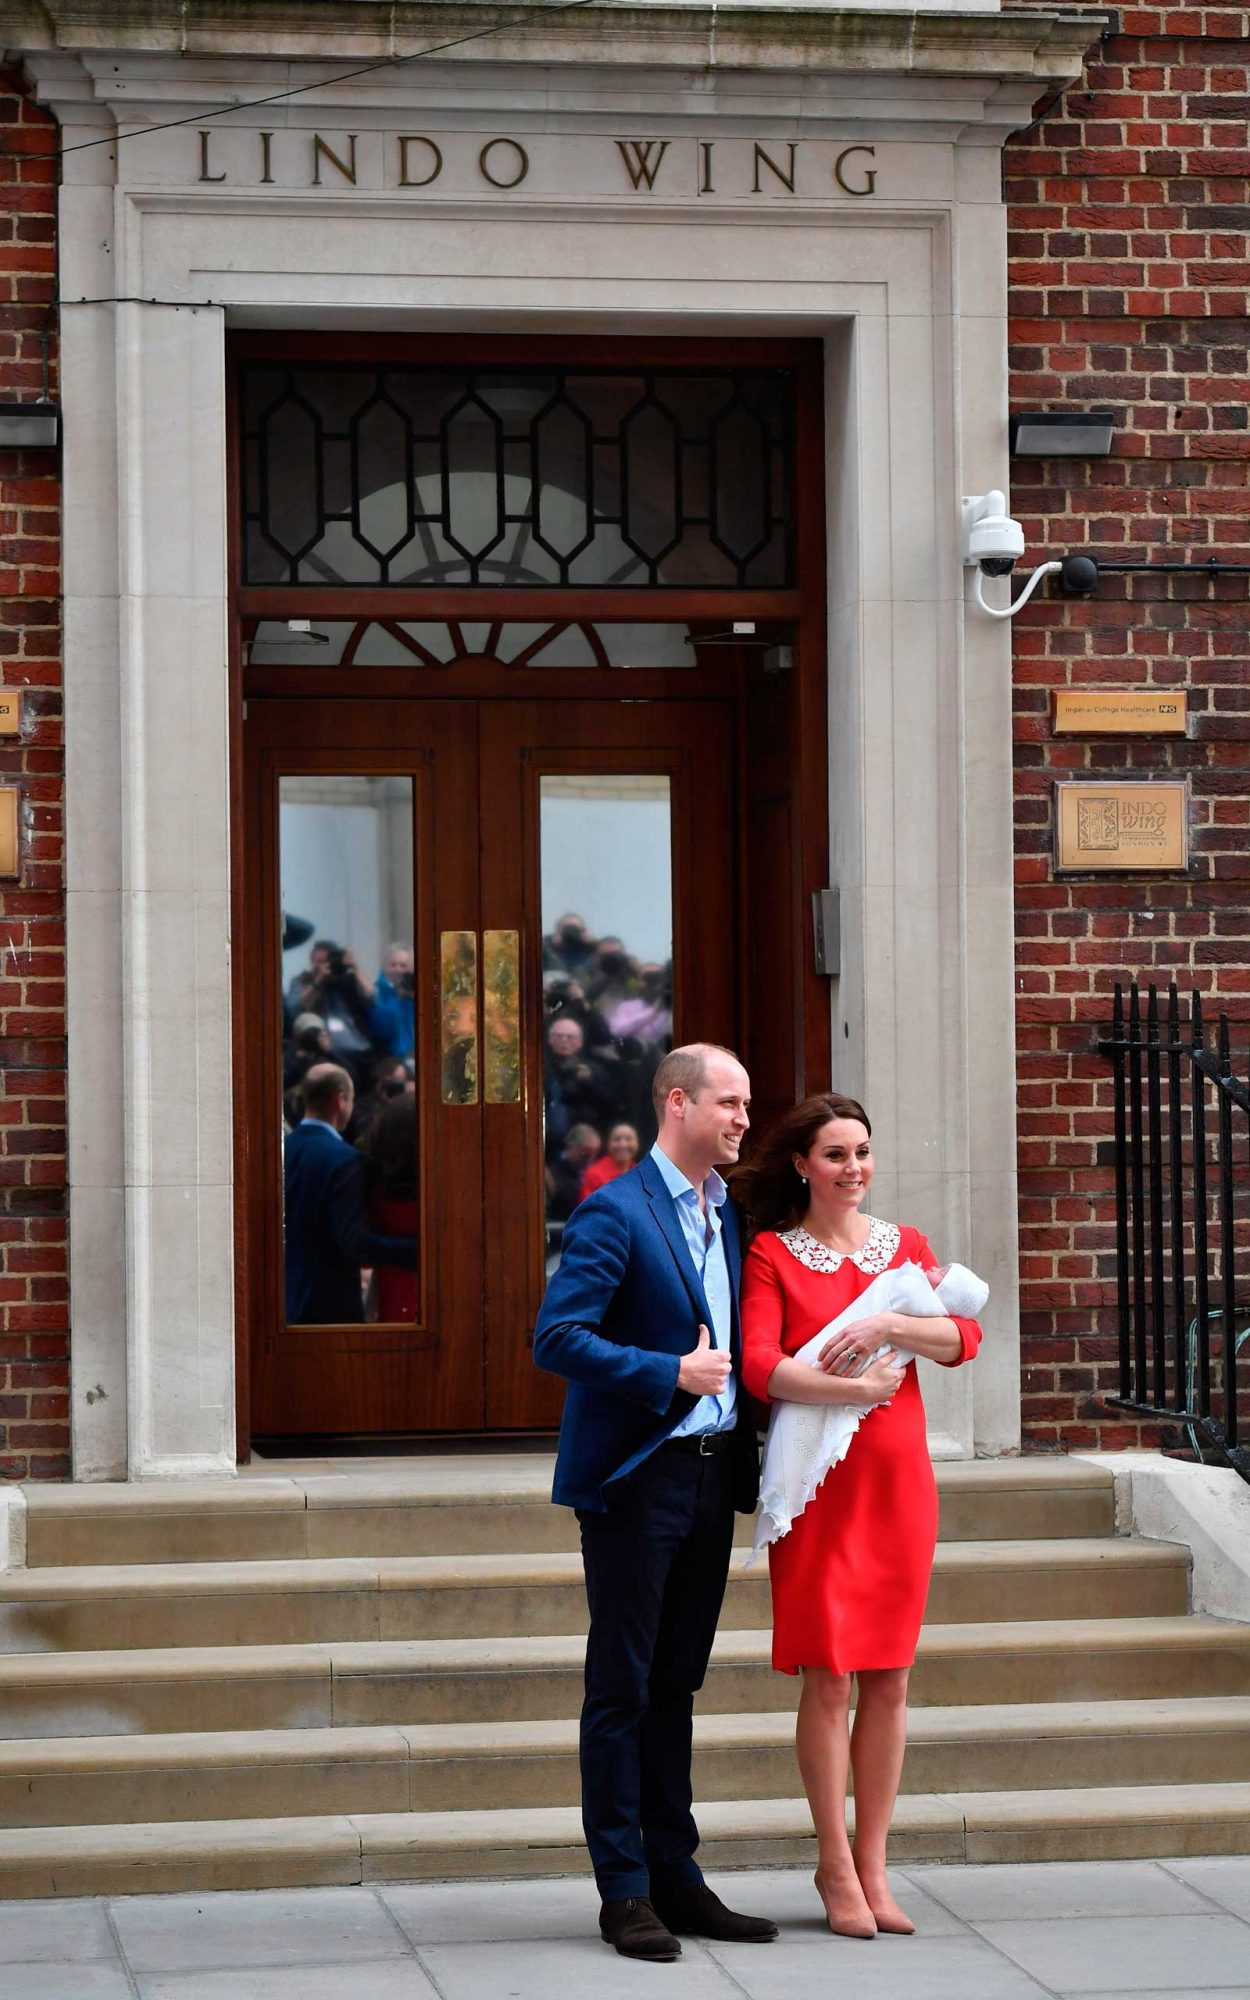 Prince William, Duke of Cambridge (L) and Britain's Catherine, Duchess of Cambridge show their newly-born son, their third child, to the media outside the Lindo Wing at St Mary's Hospital in central London, on April 23, 2018.